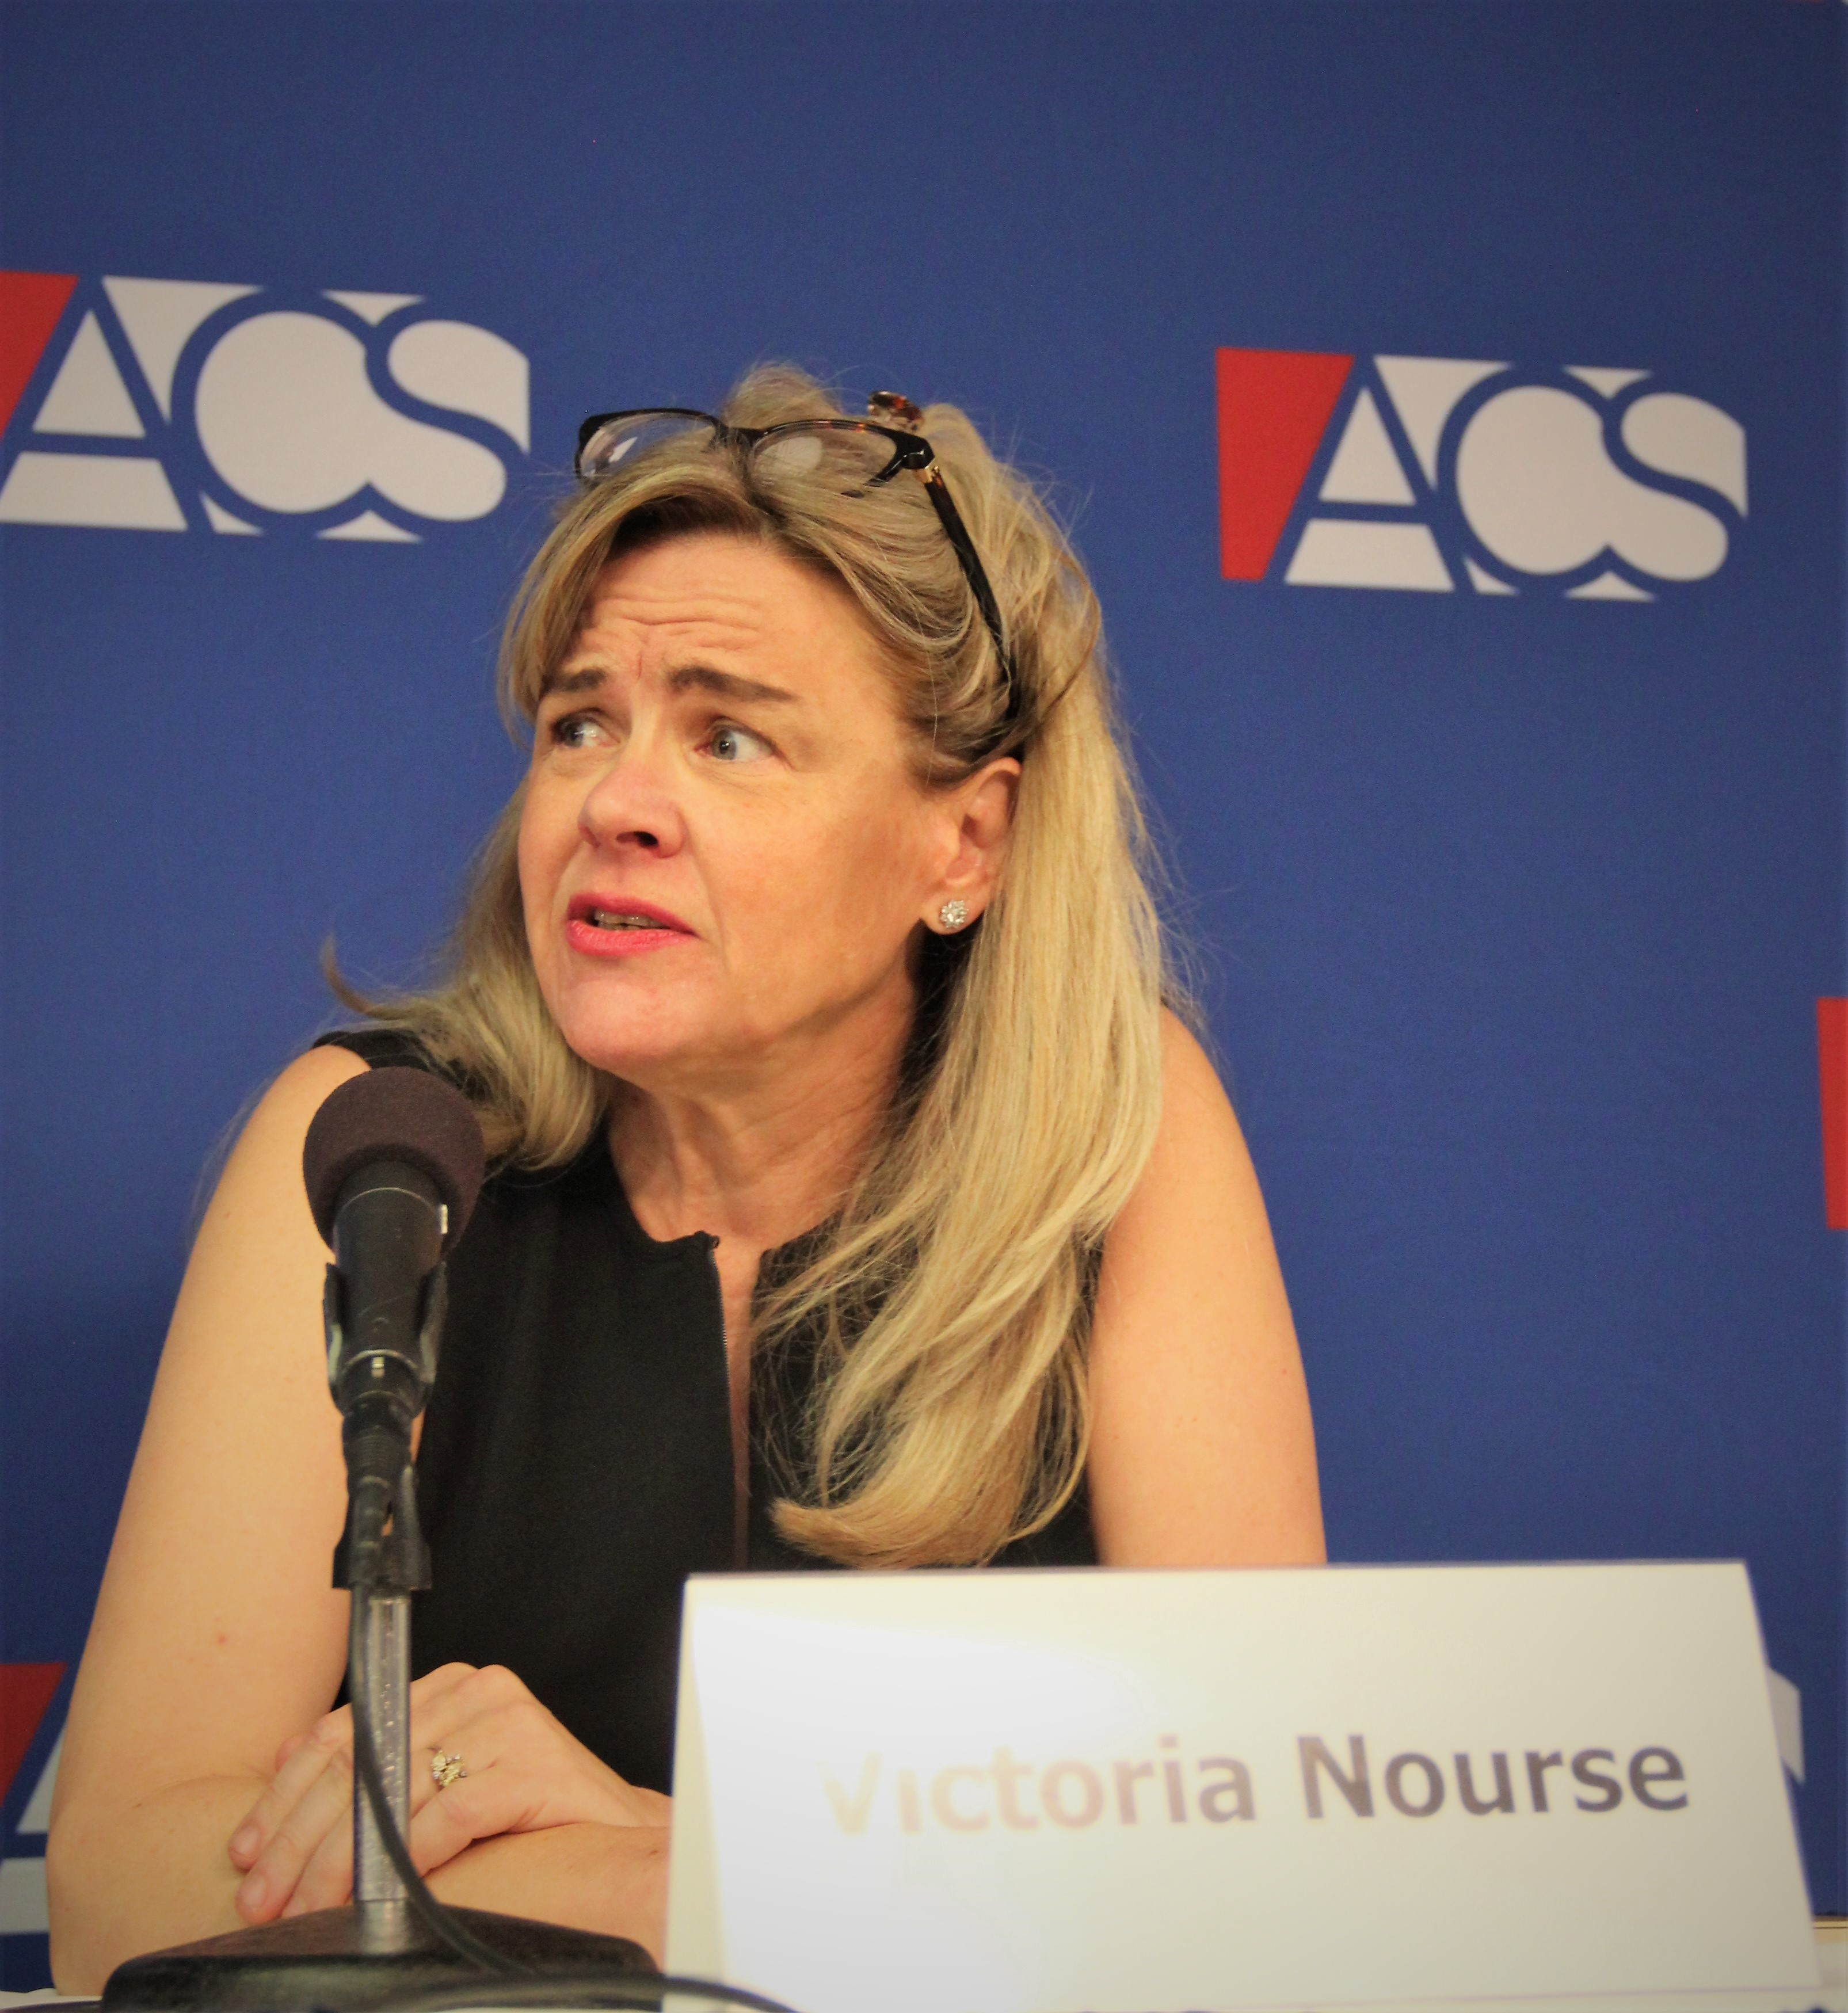 Victoria Nourse speaks at the 2018 ACS Supreme Court Preview, September 6 2018